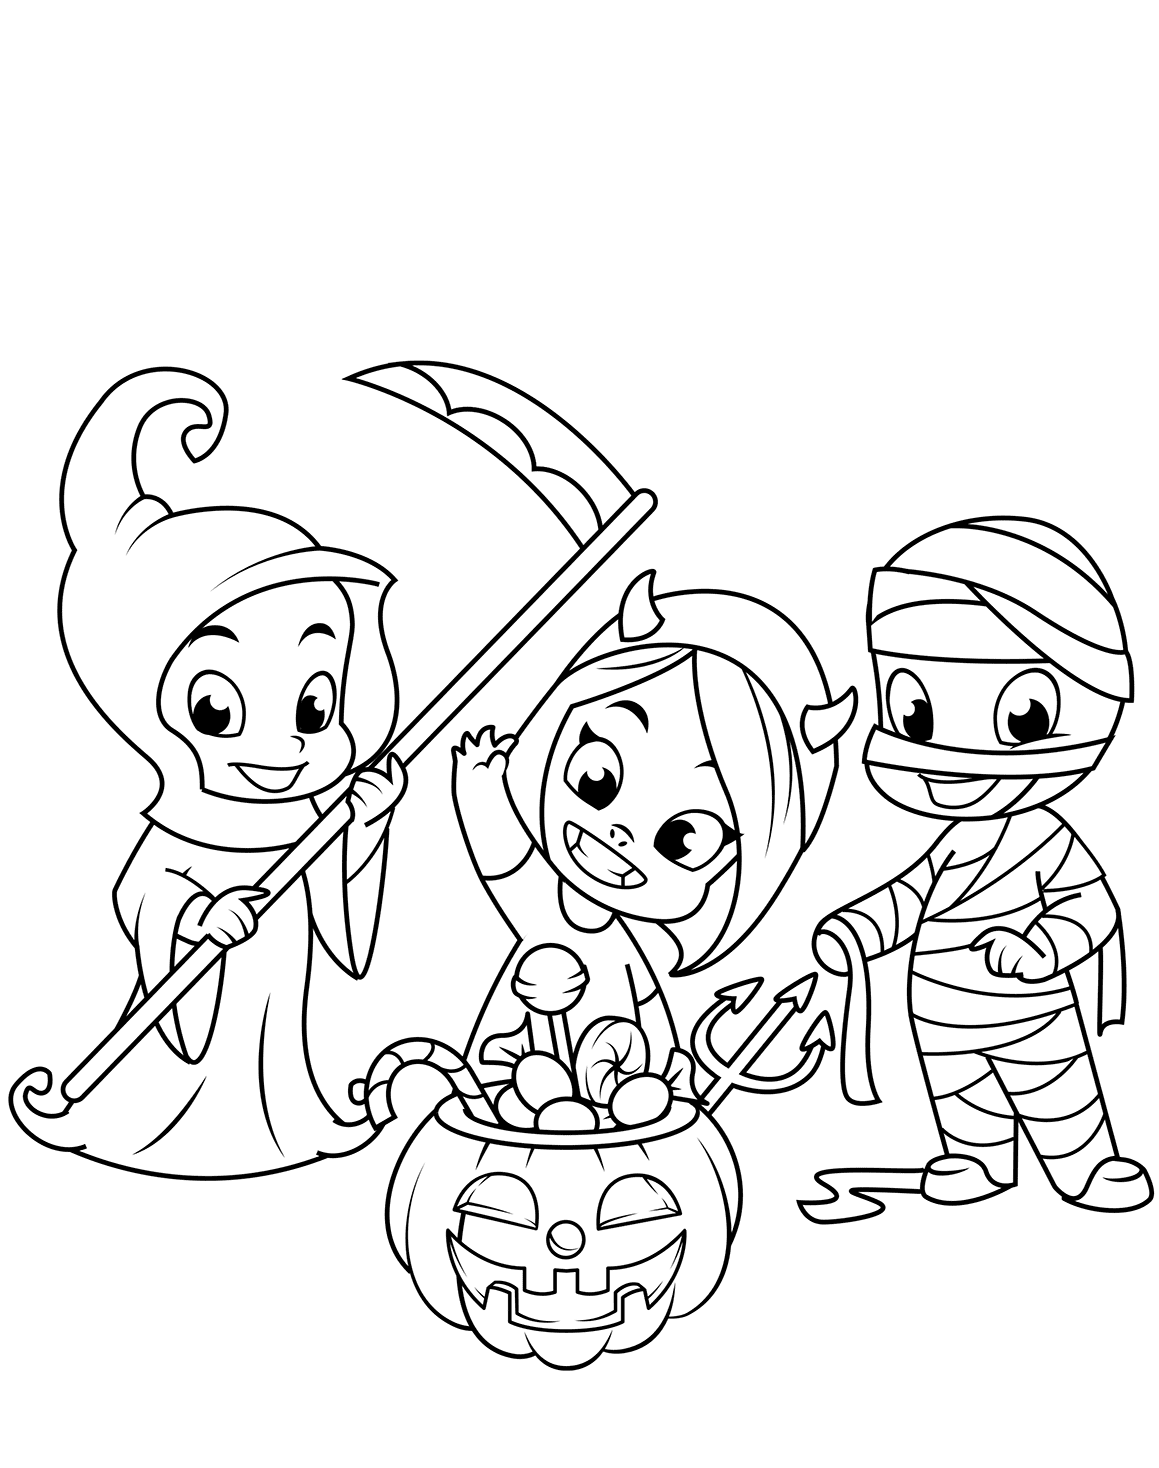 Cute Halloween Costumes Coloring Page